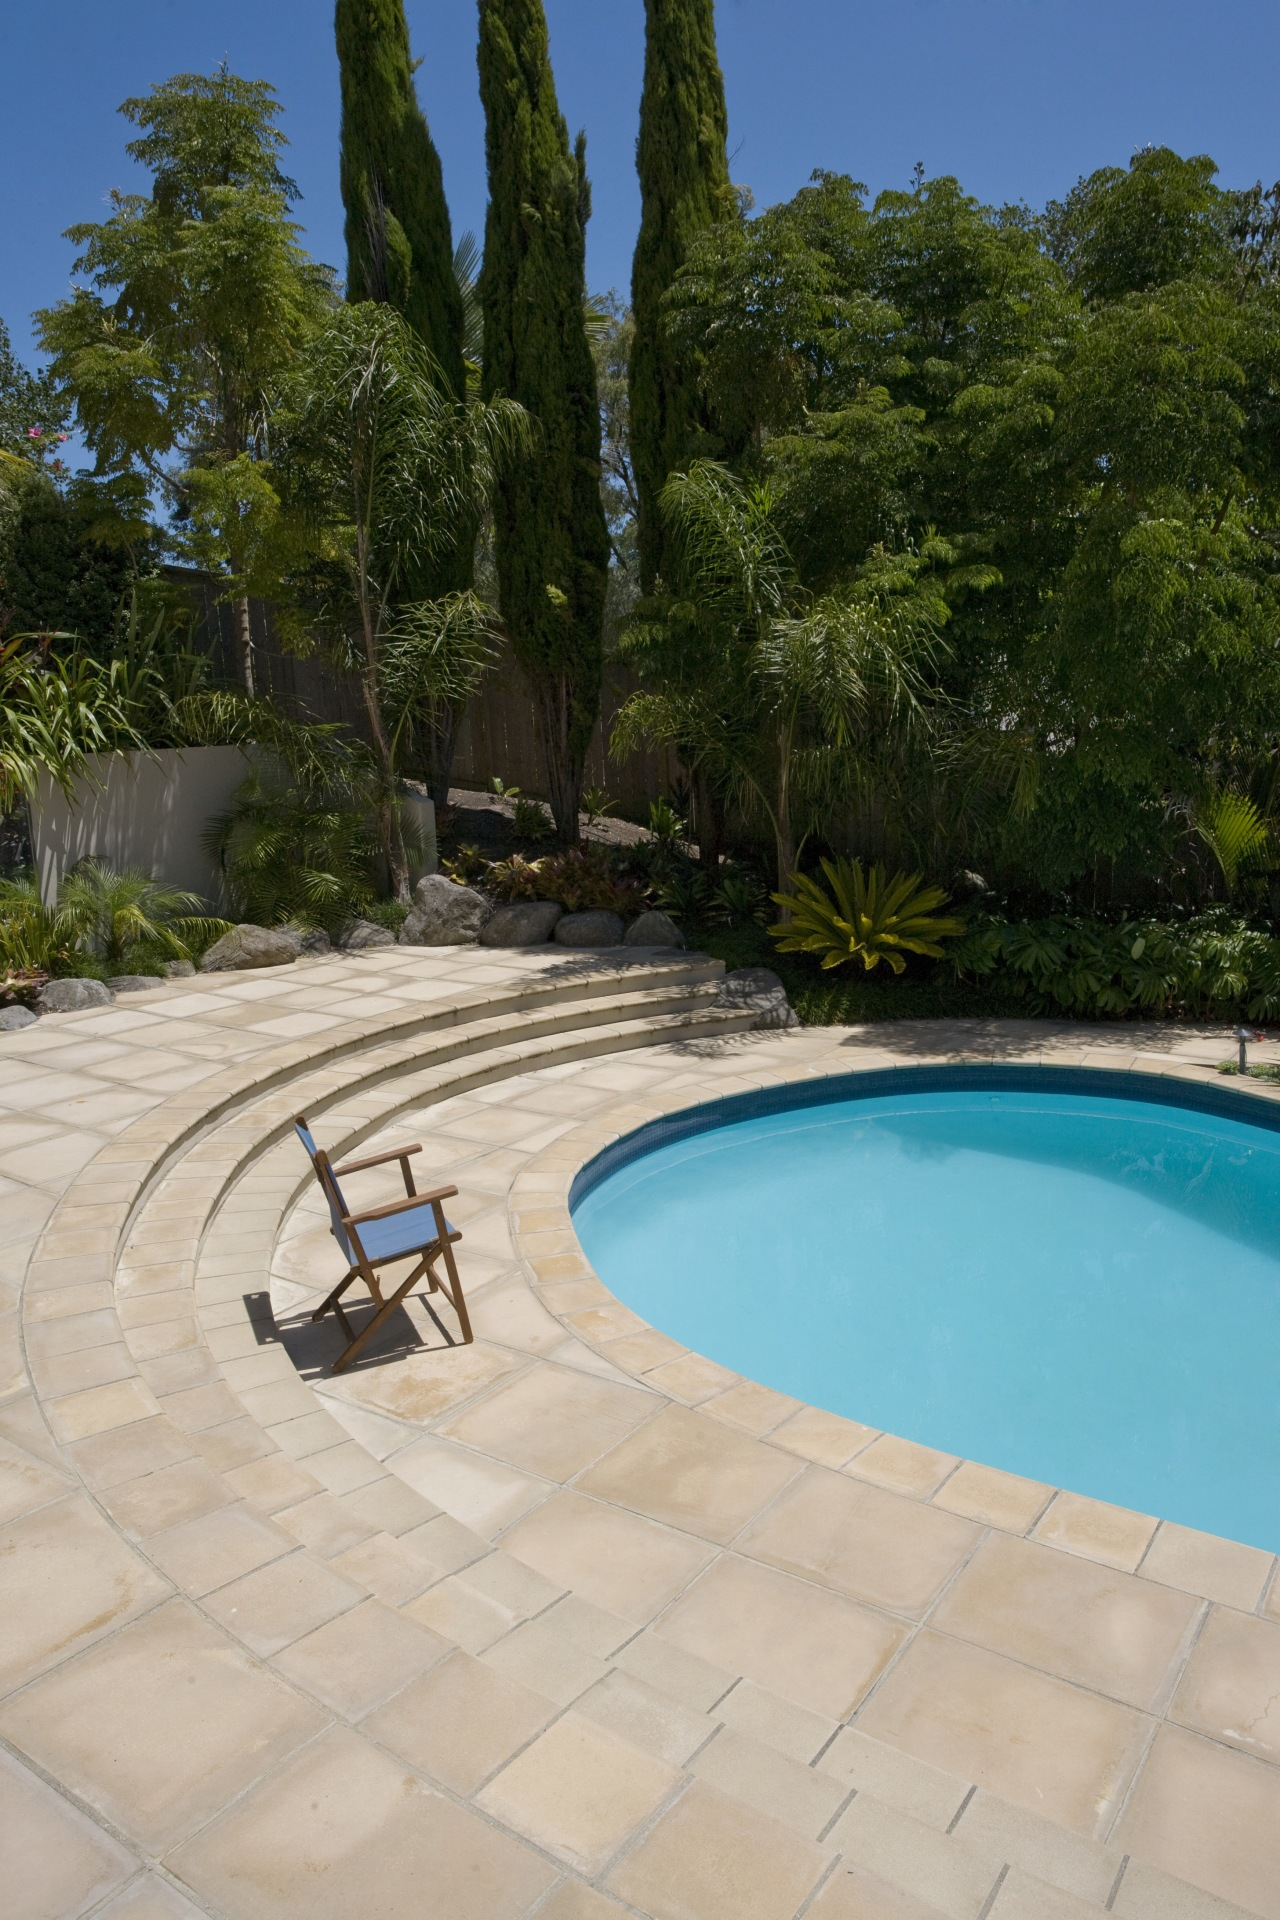 View of a pool with paving that features backyard, estate, landscape, leisure, outdoor structure, property, real estate, swimming pool, tree, vacation, water, gray